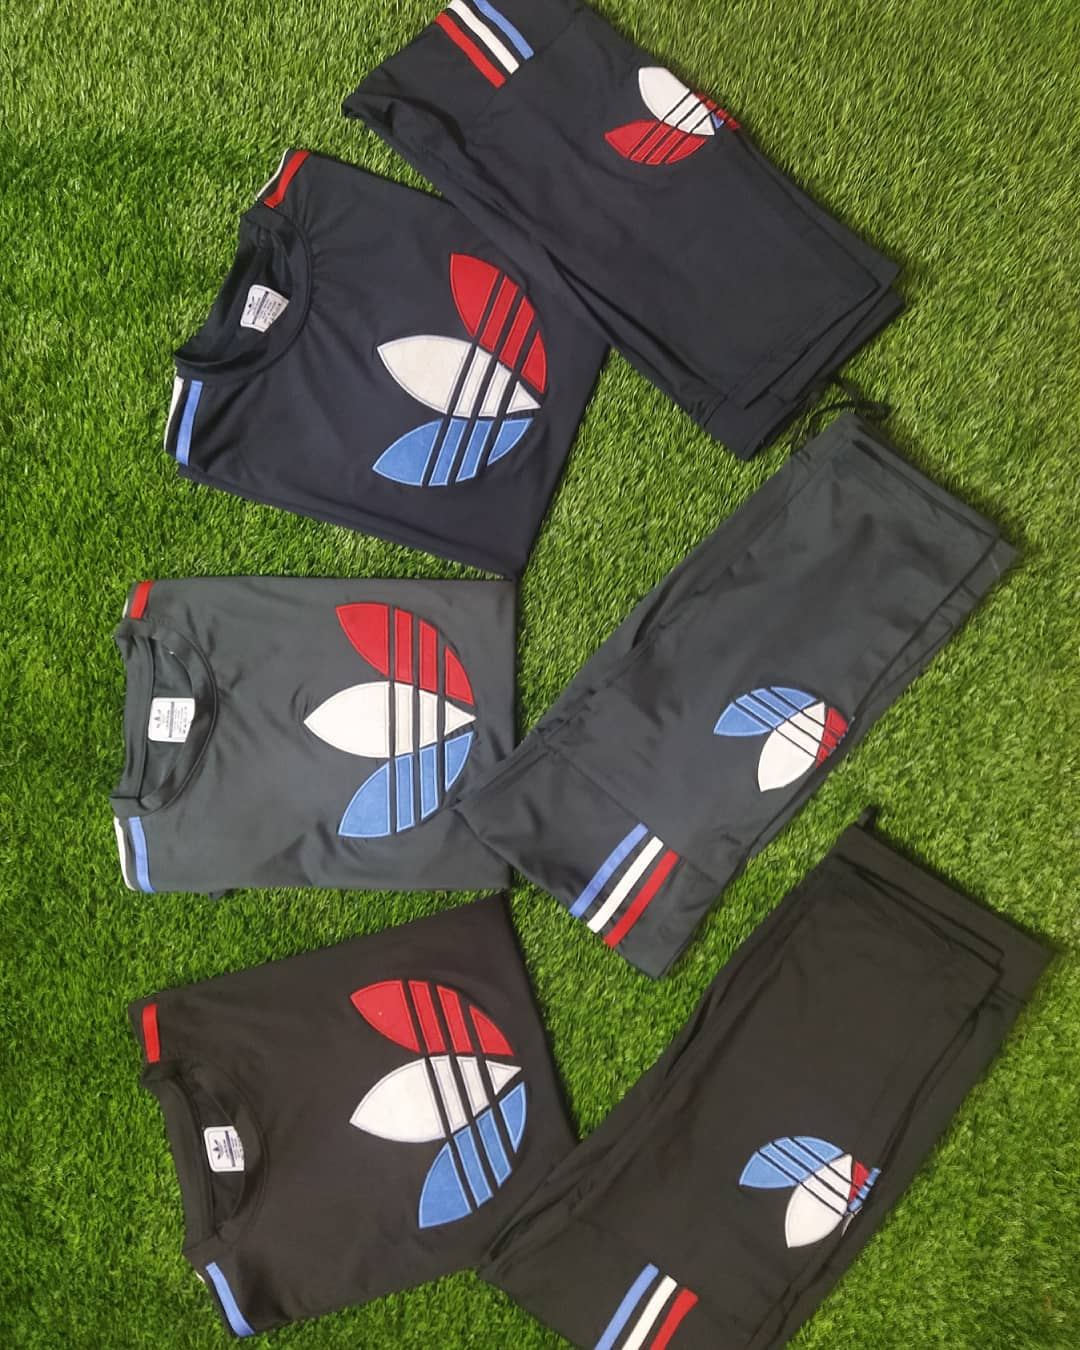 Adidas Rayon Track suit For Boys (Black)